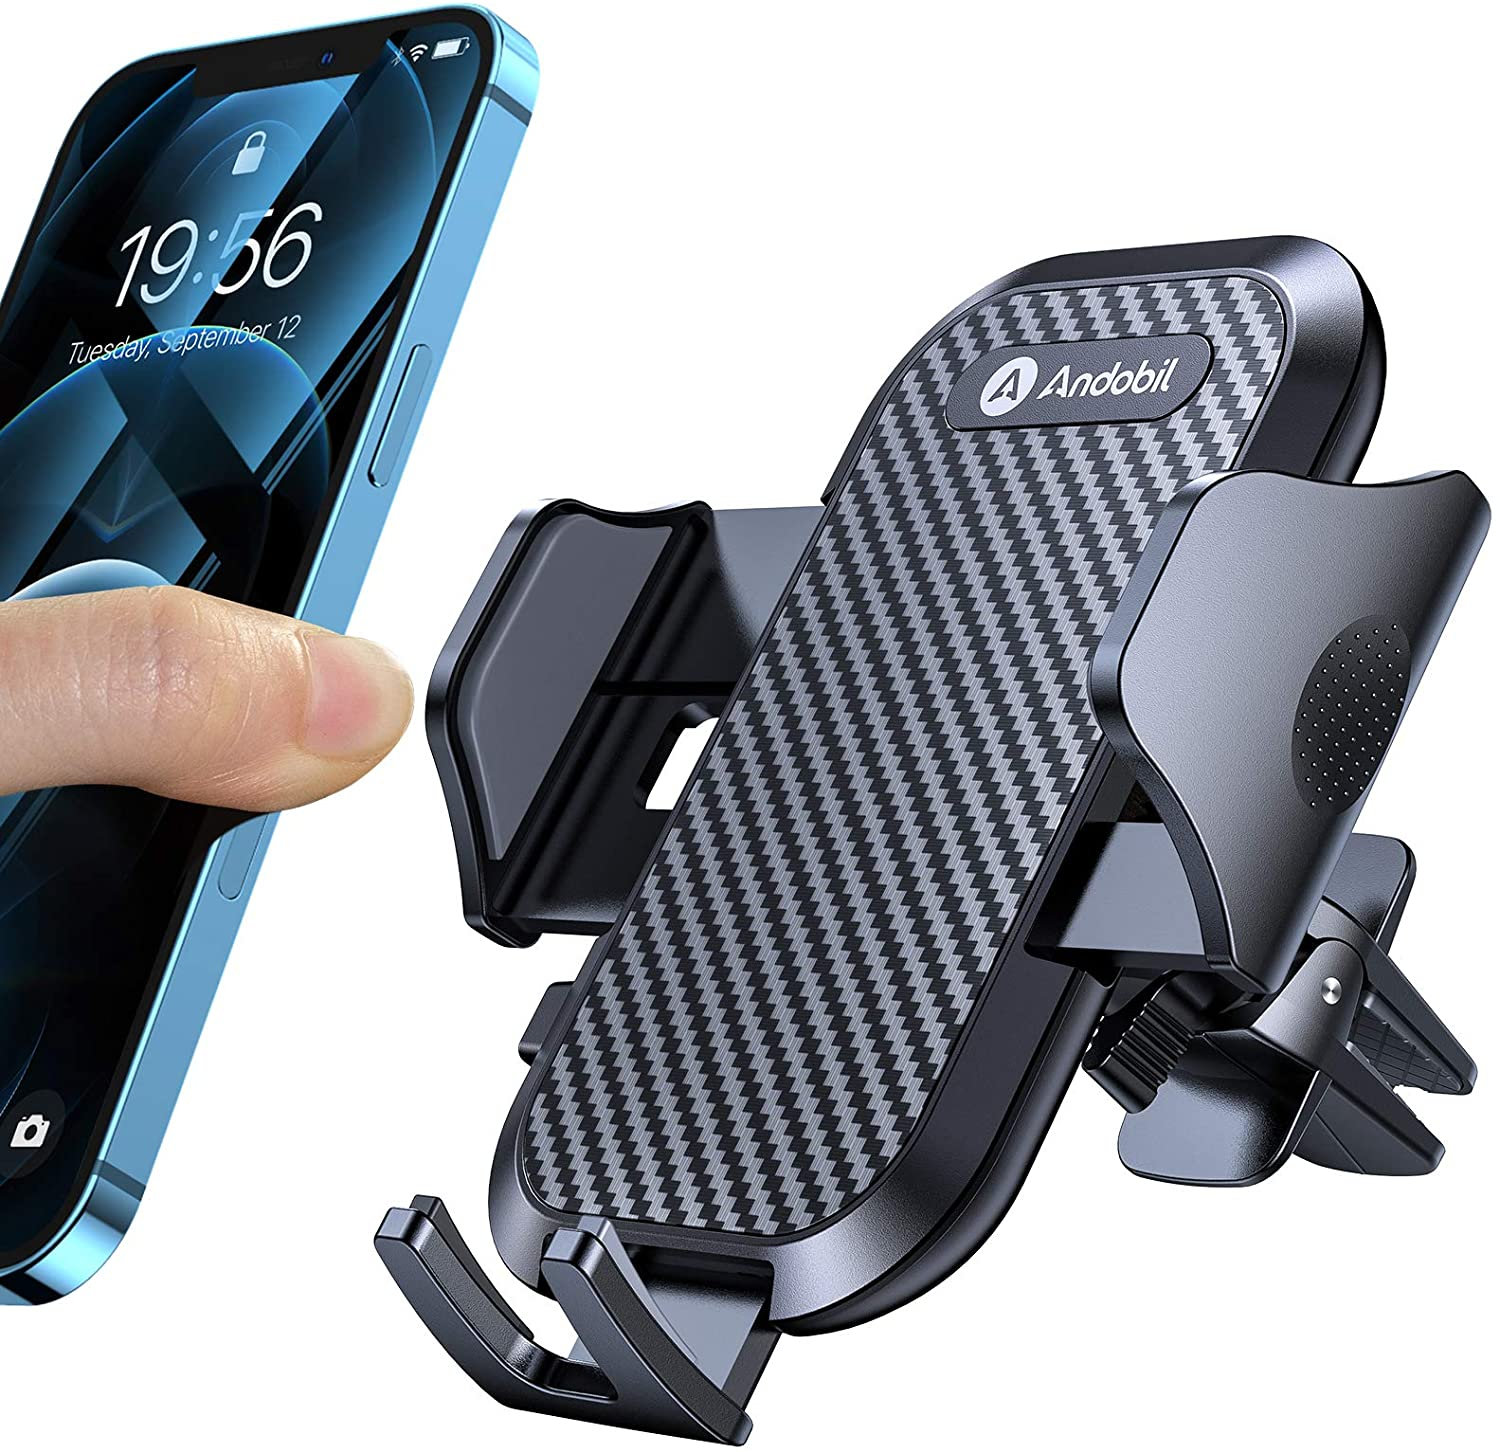 Andobil Hands-Free Easy Clamp Car Vent Phone Mount